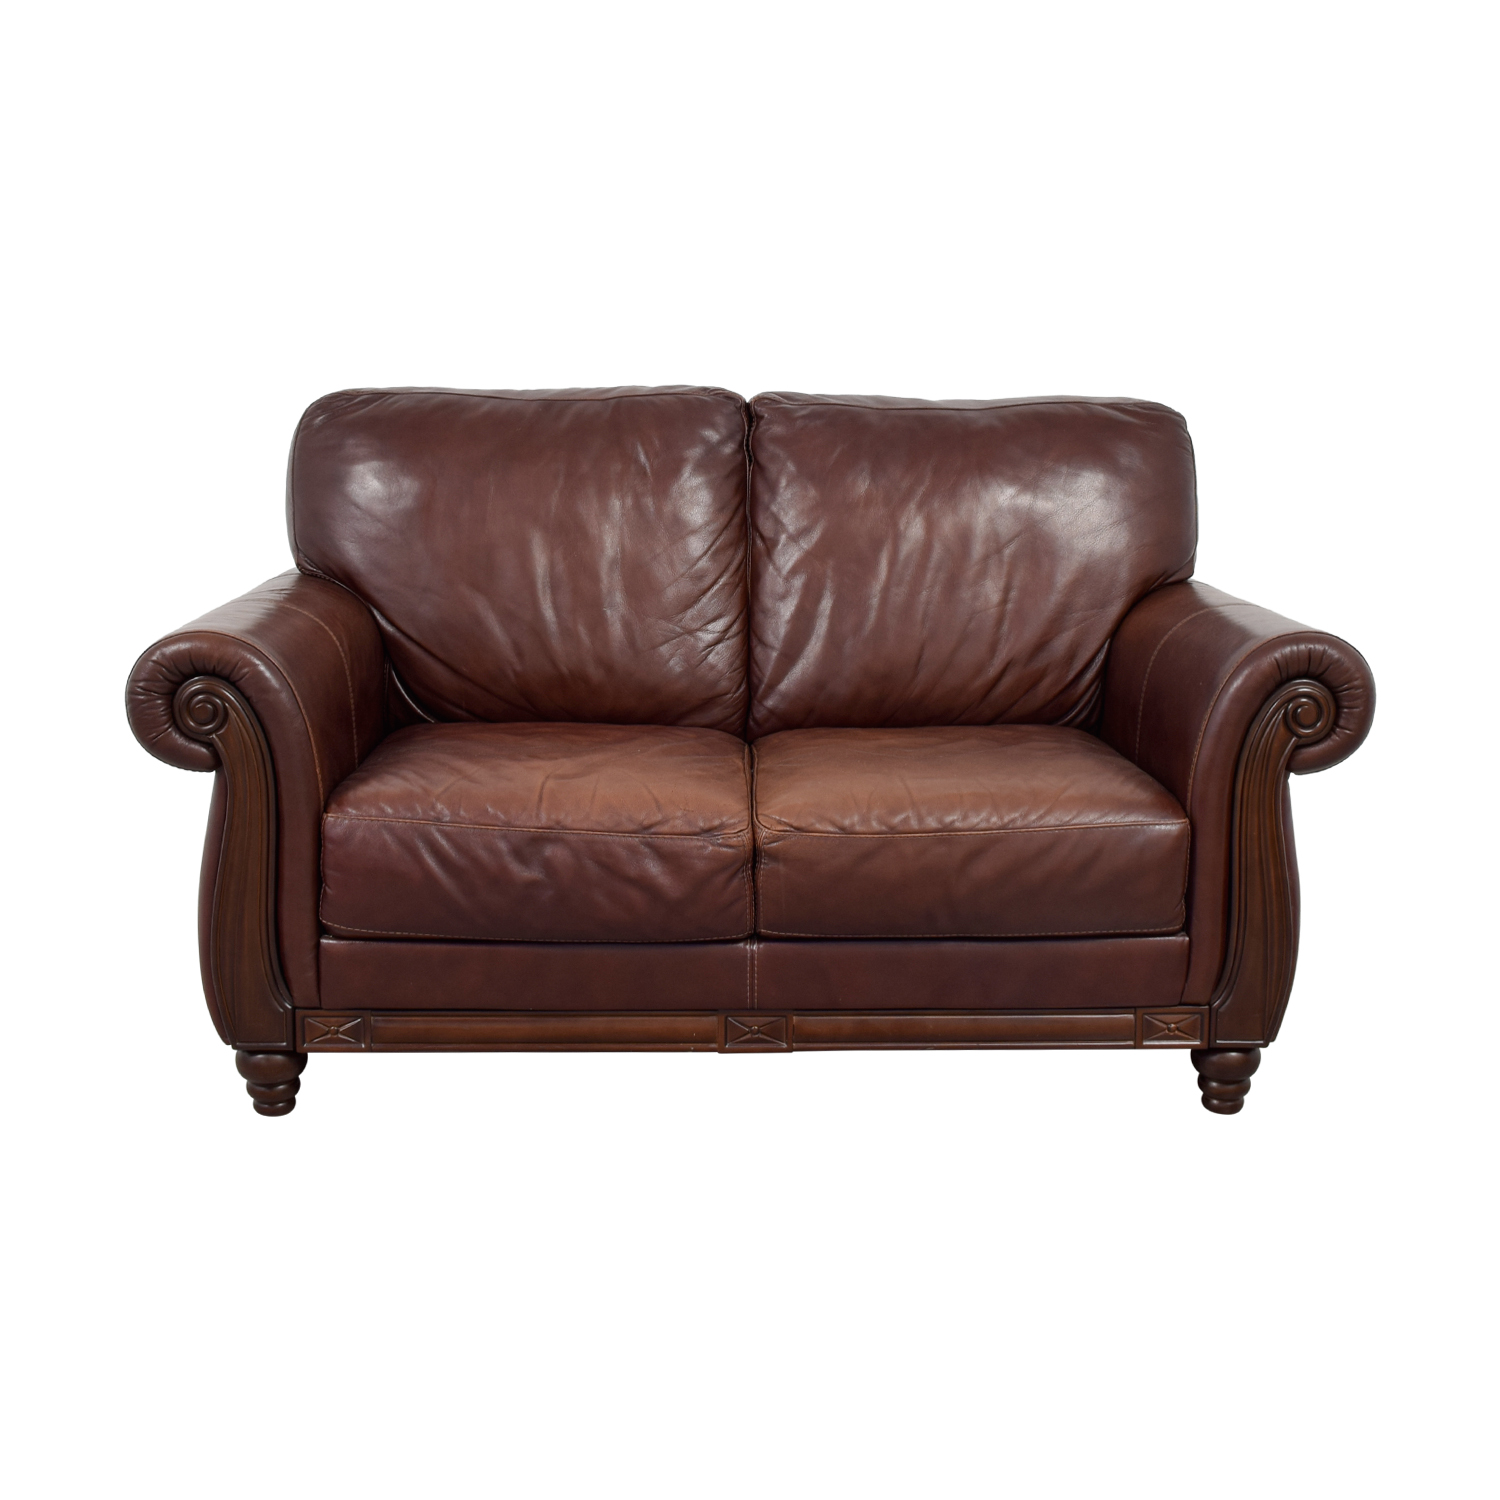 Macy's Brown Leather Two-Cushion Loveseat / Loveseats